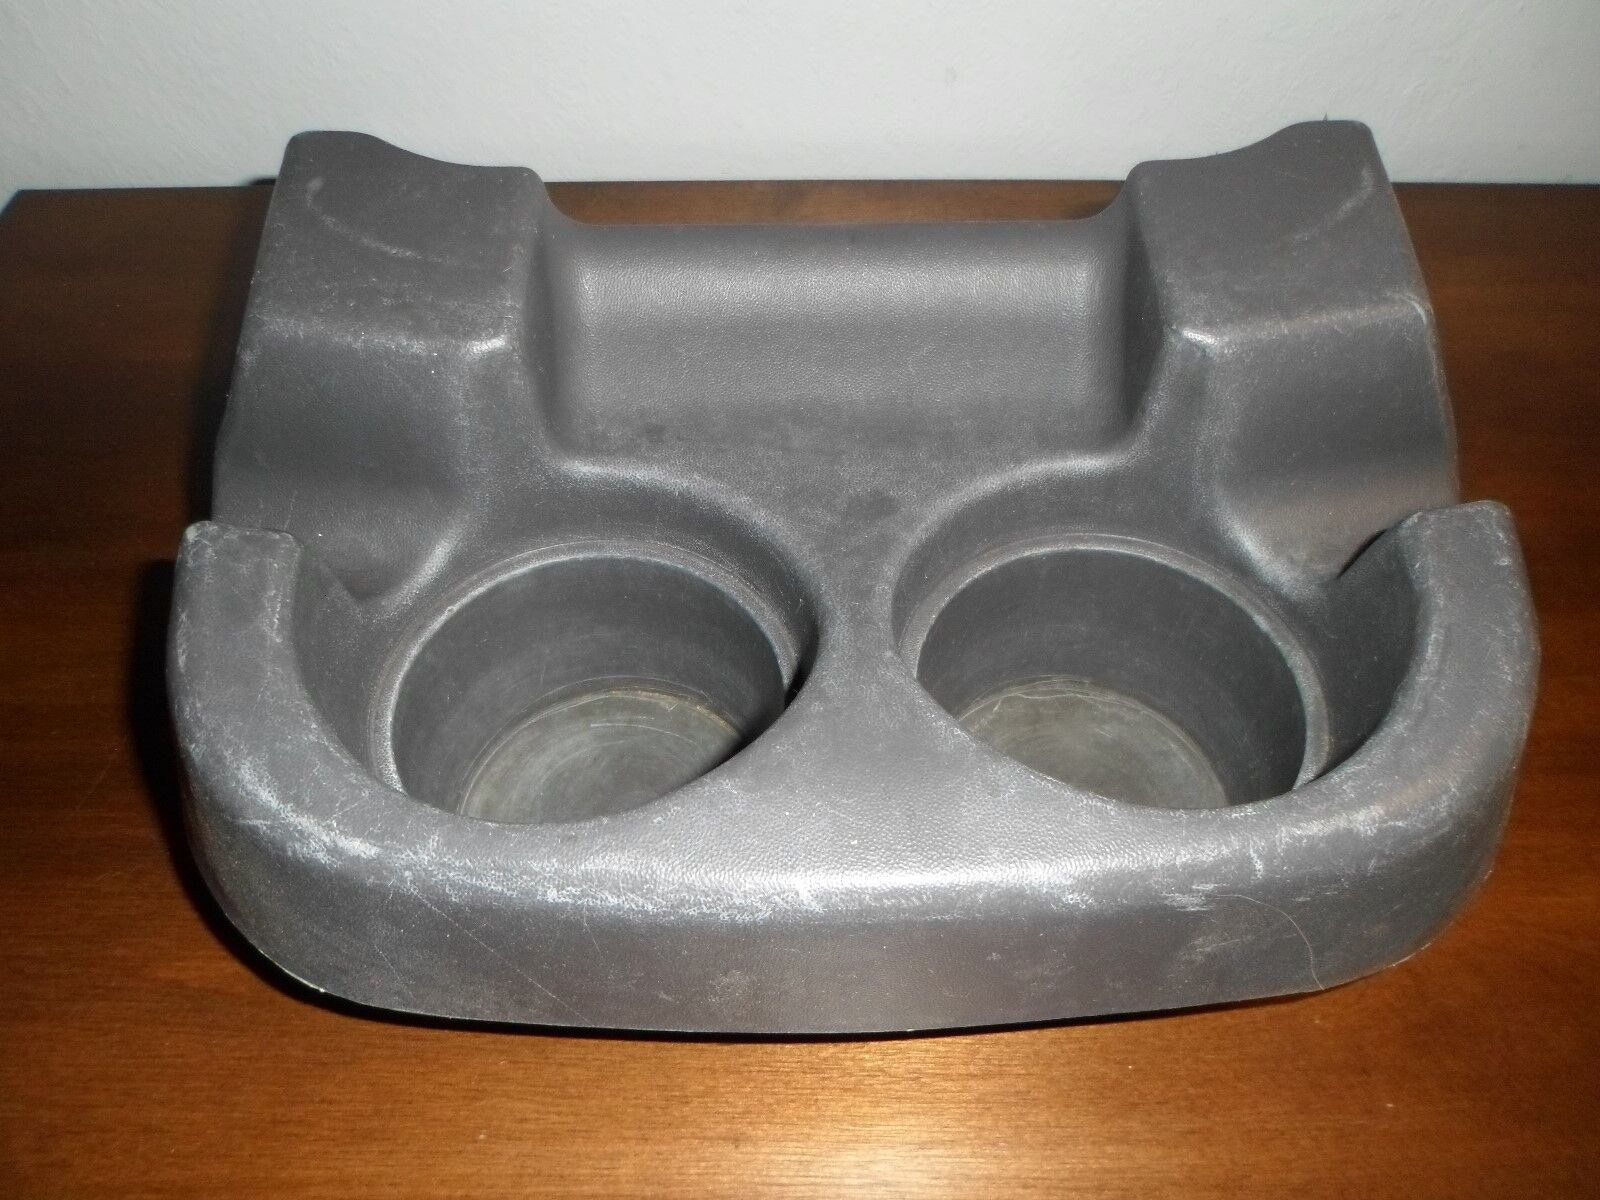 Used Ford Excursion Cup Holders For Sale